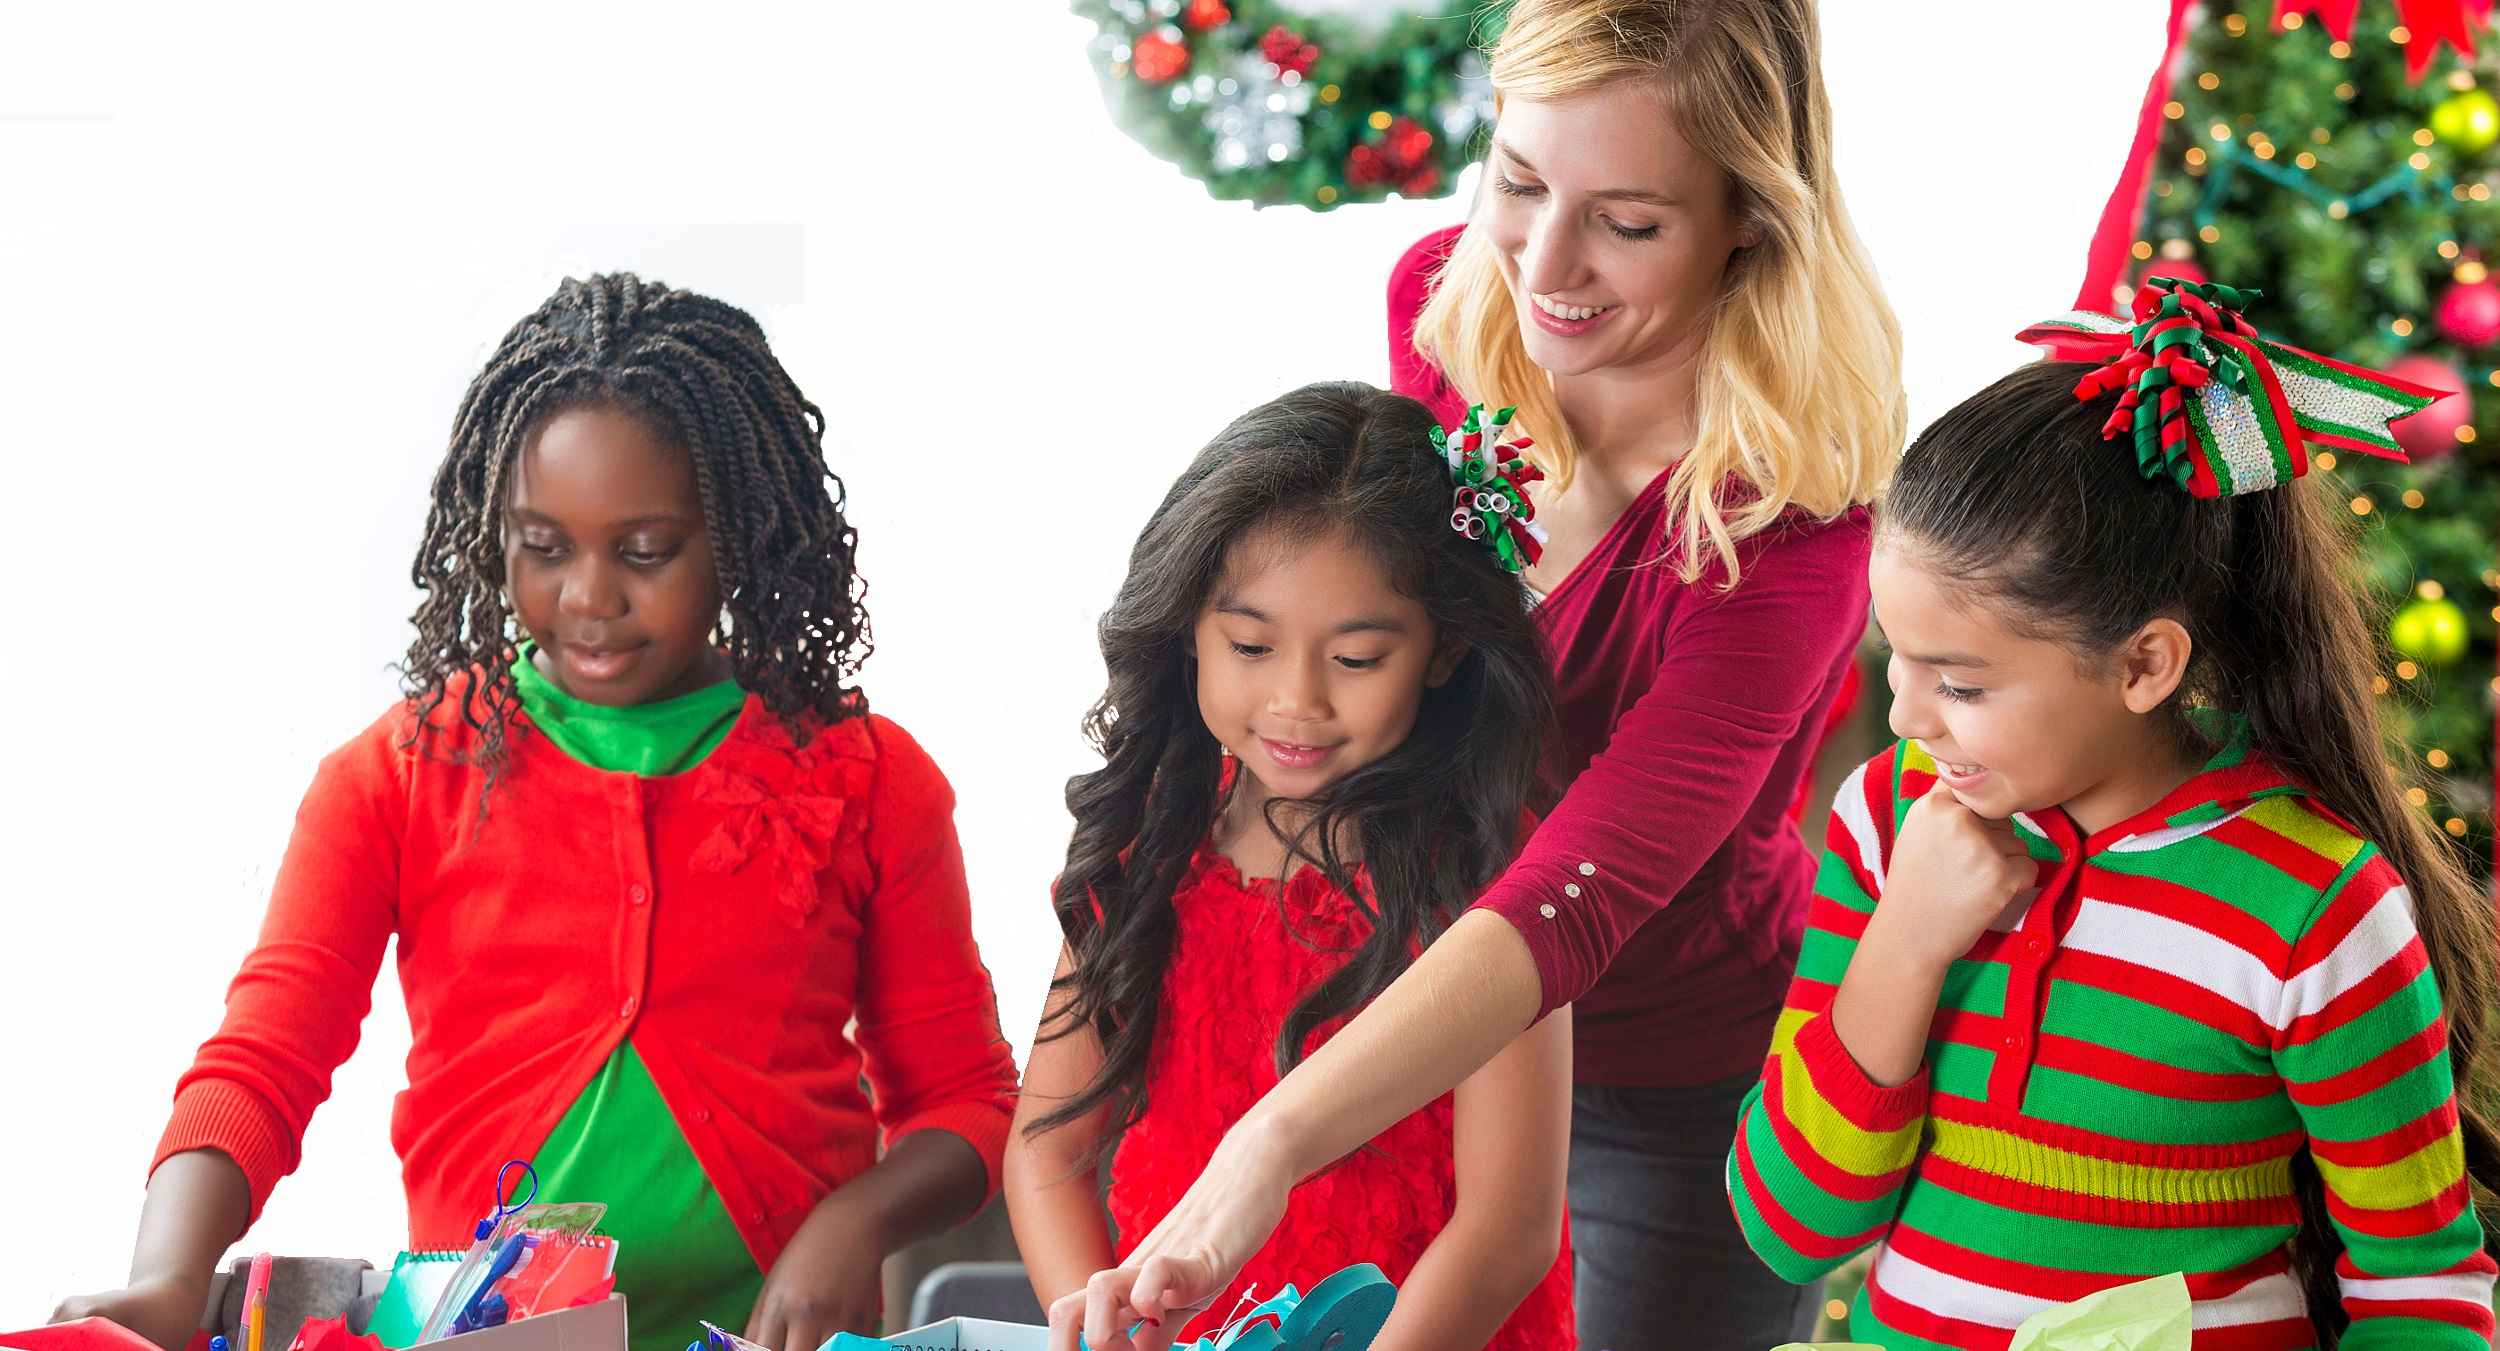 Woman with girls wrapping presents in front of a Christmas tree